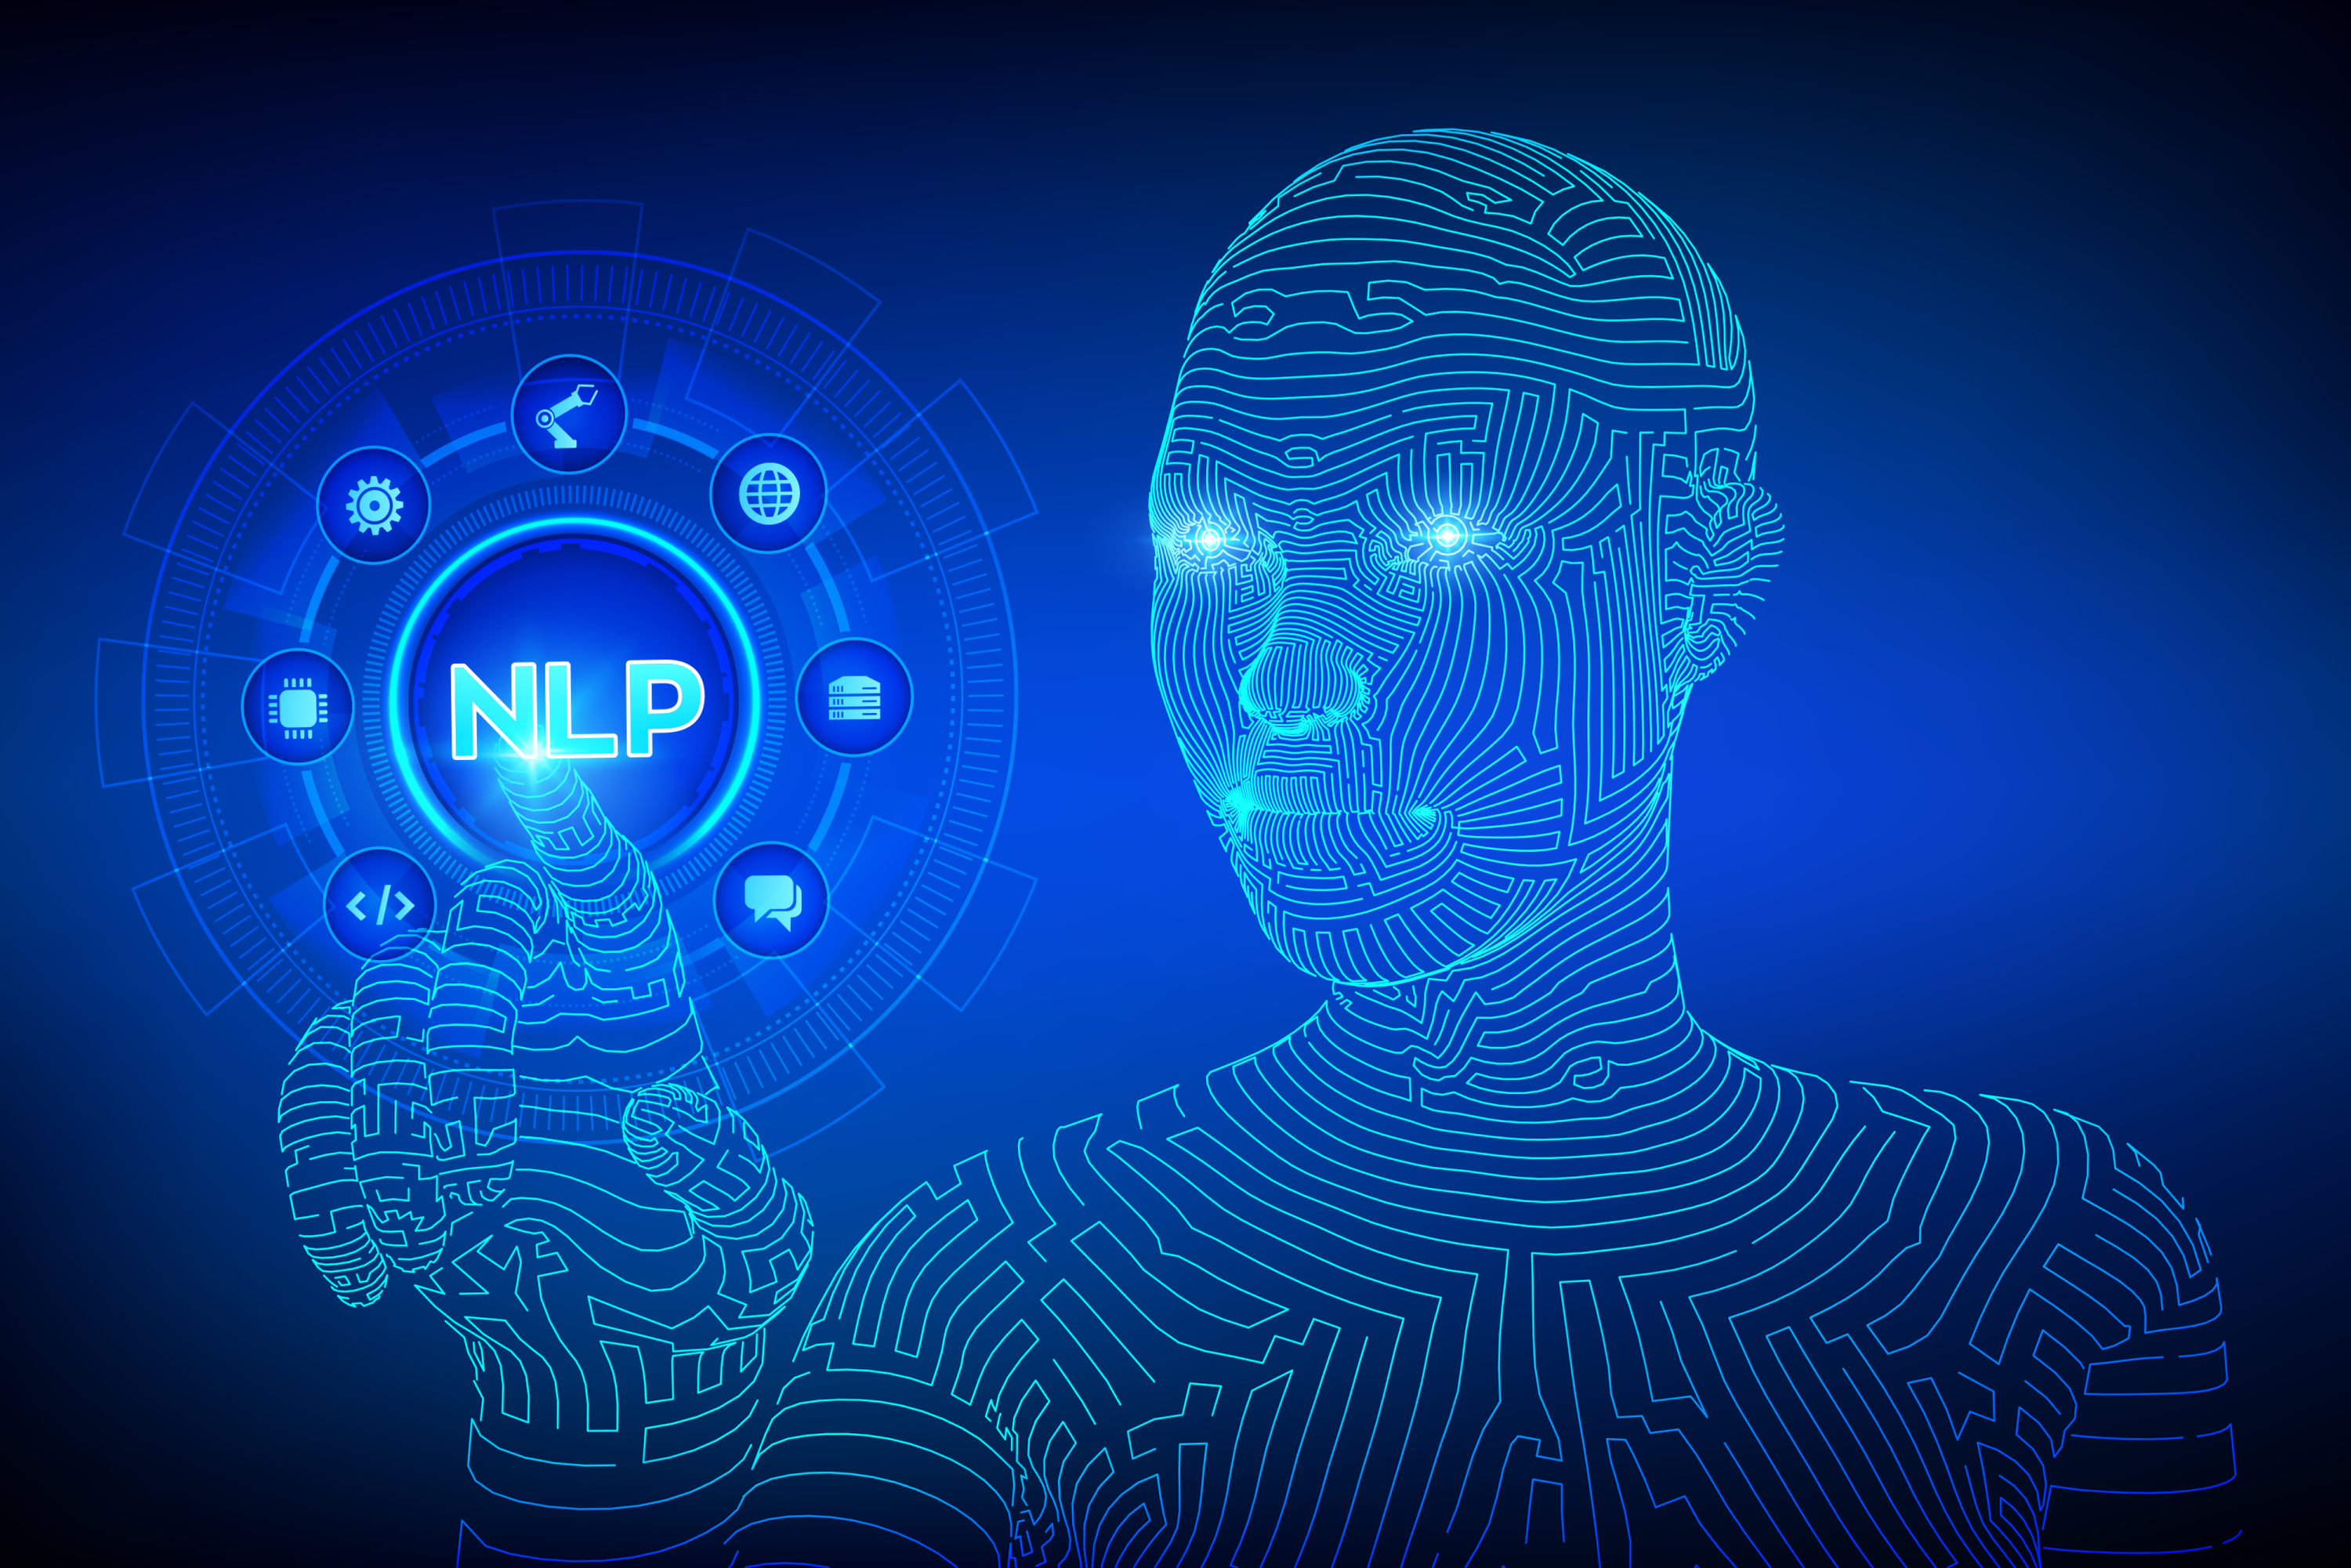 check the post:What Can I do with NLP? for a description of the image